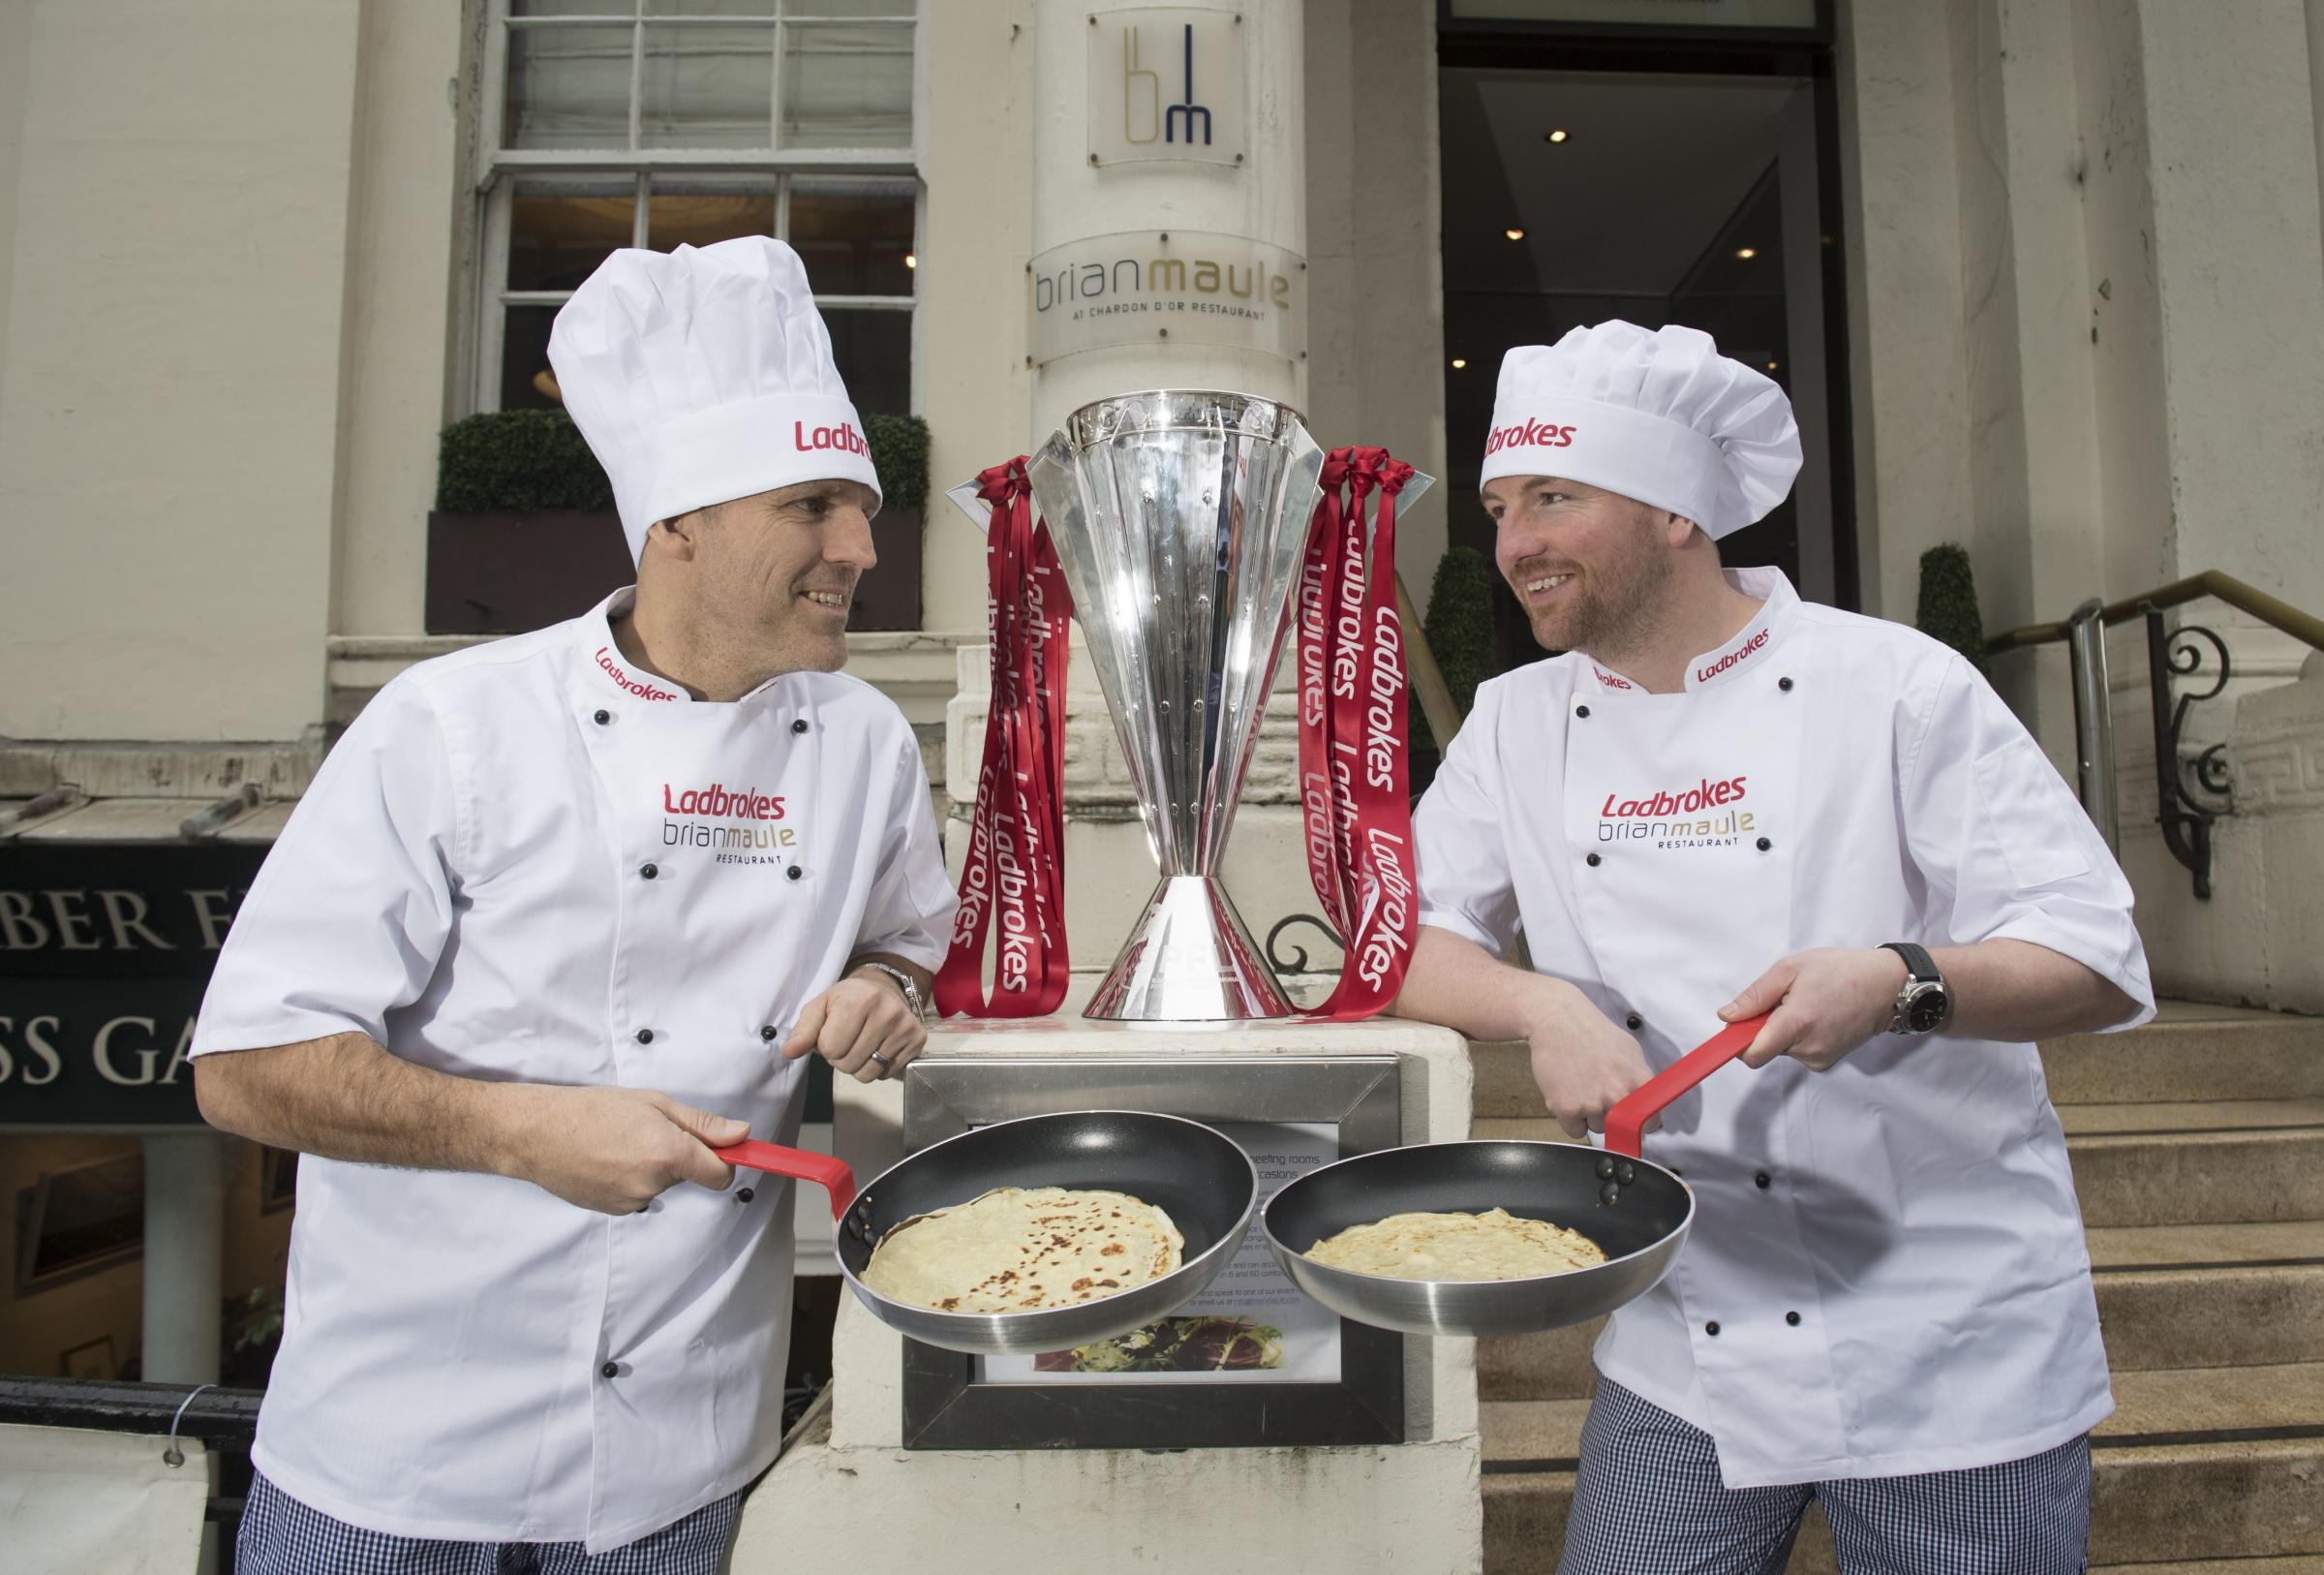 Former Rangers and Celtic stars Alex Rae, left, and Mark Wilson, right, go head-to-head in a Ladbrokes pancake tossing challenge.